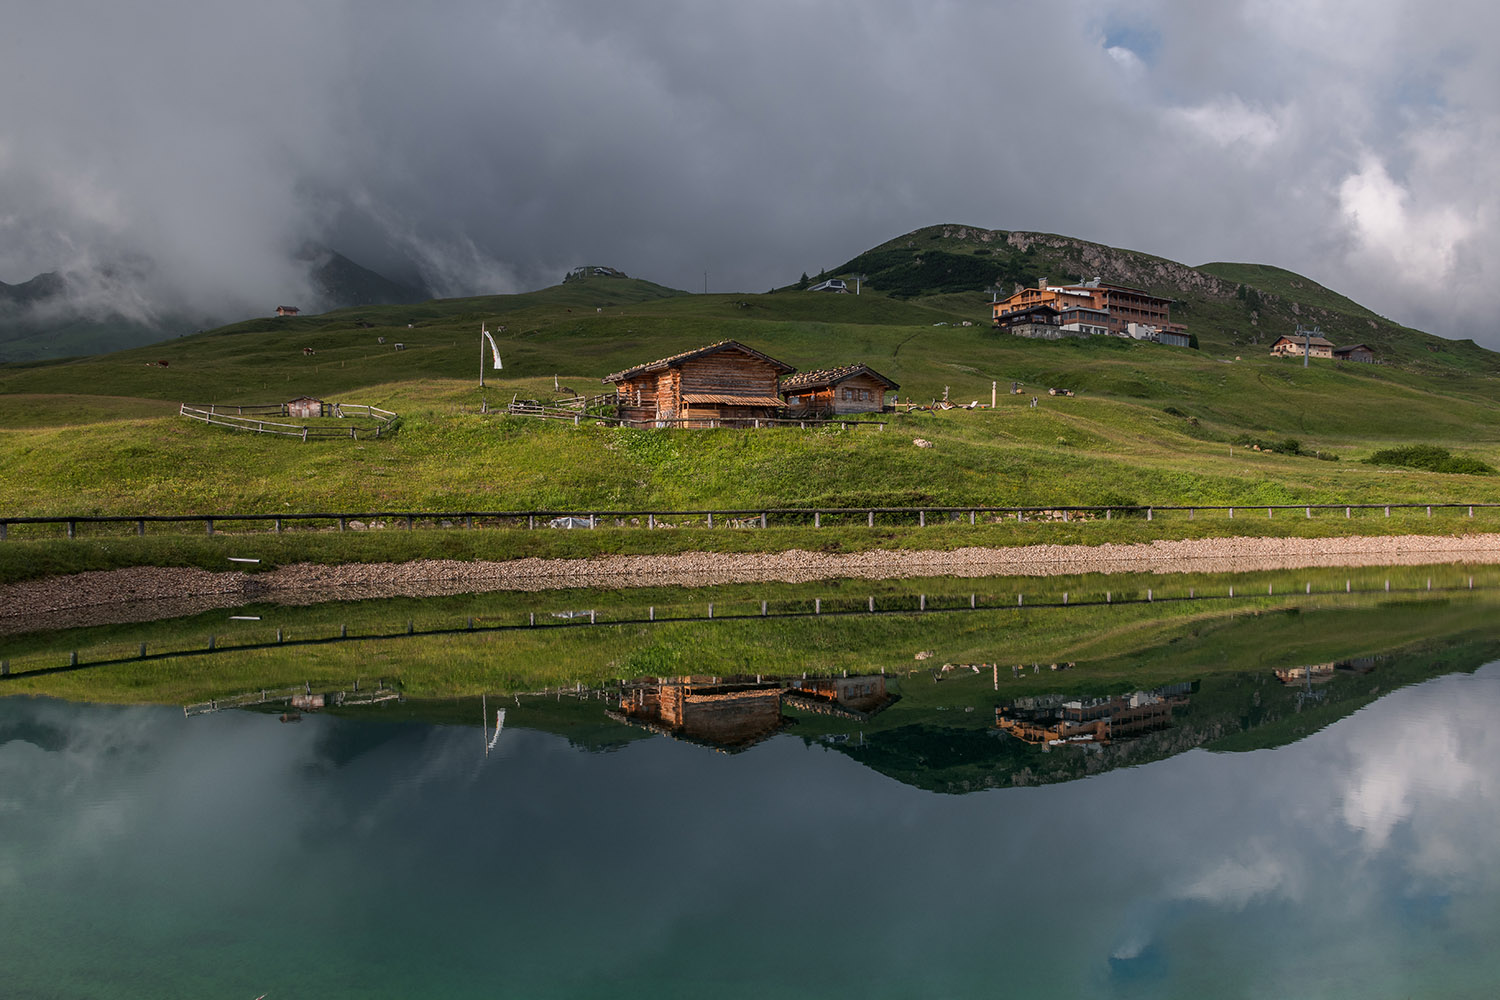 Reflection at Seiser Alm example image 1